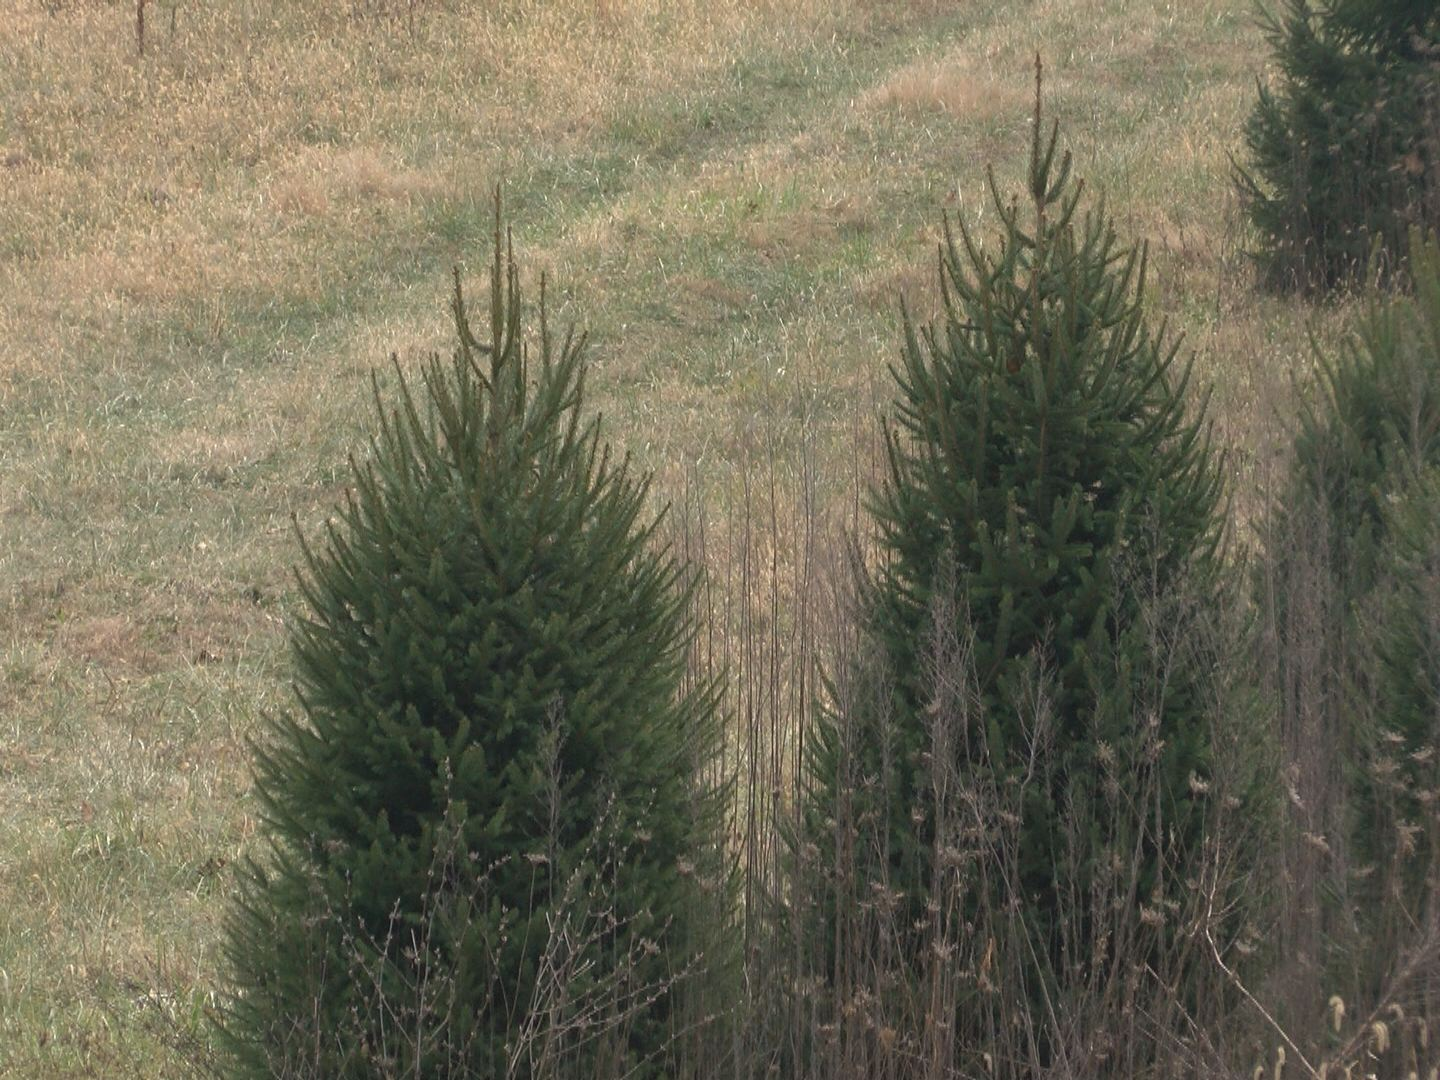 Christmas trees growing in Johnson County_237416